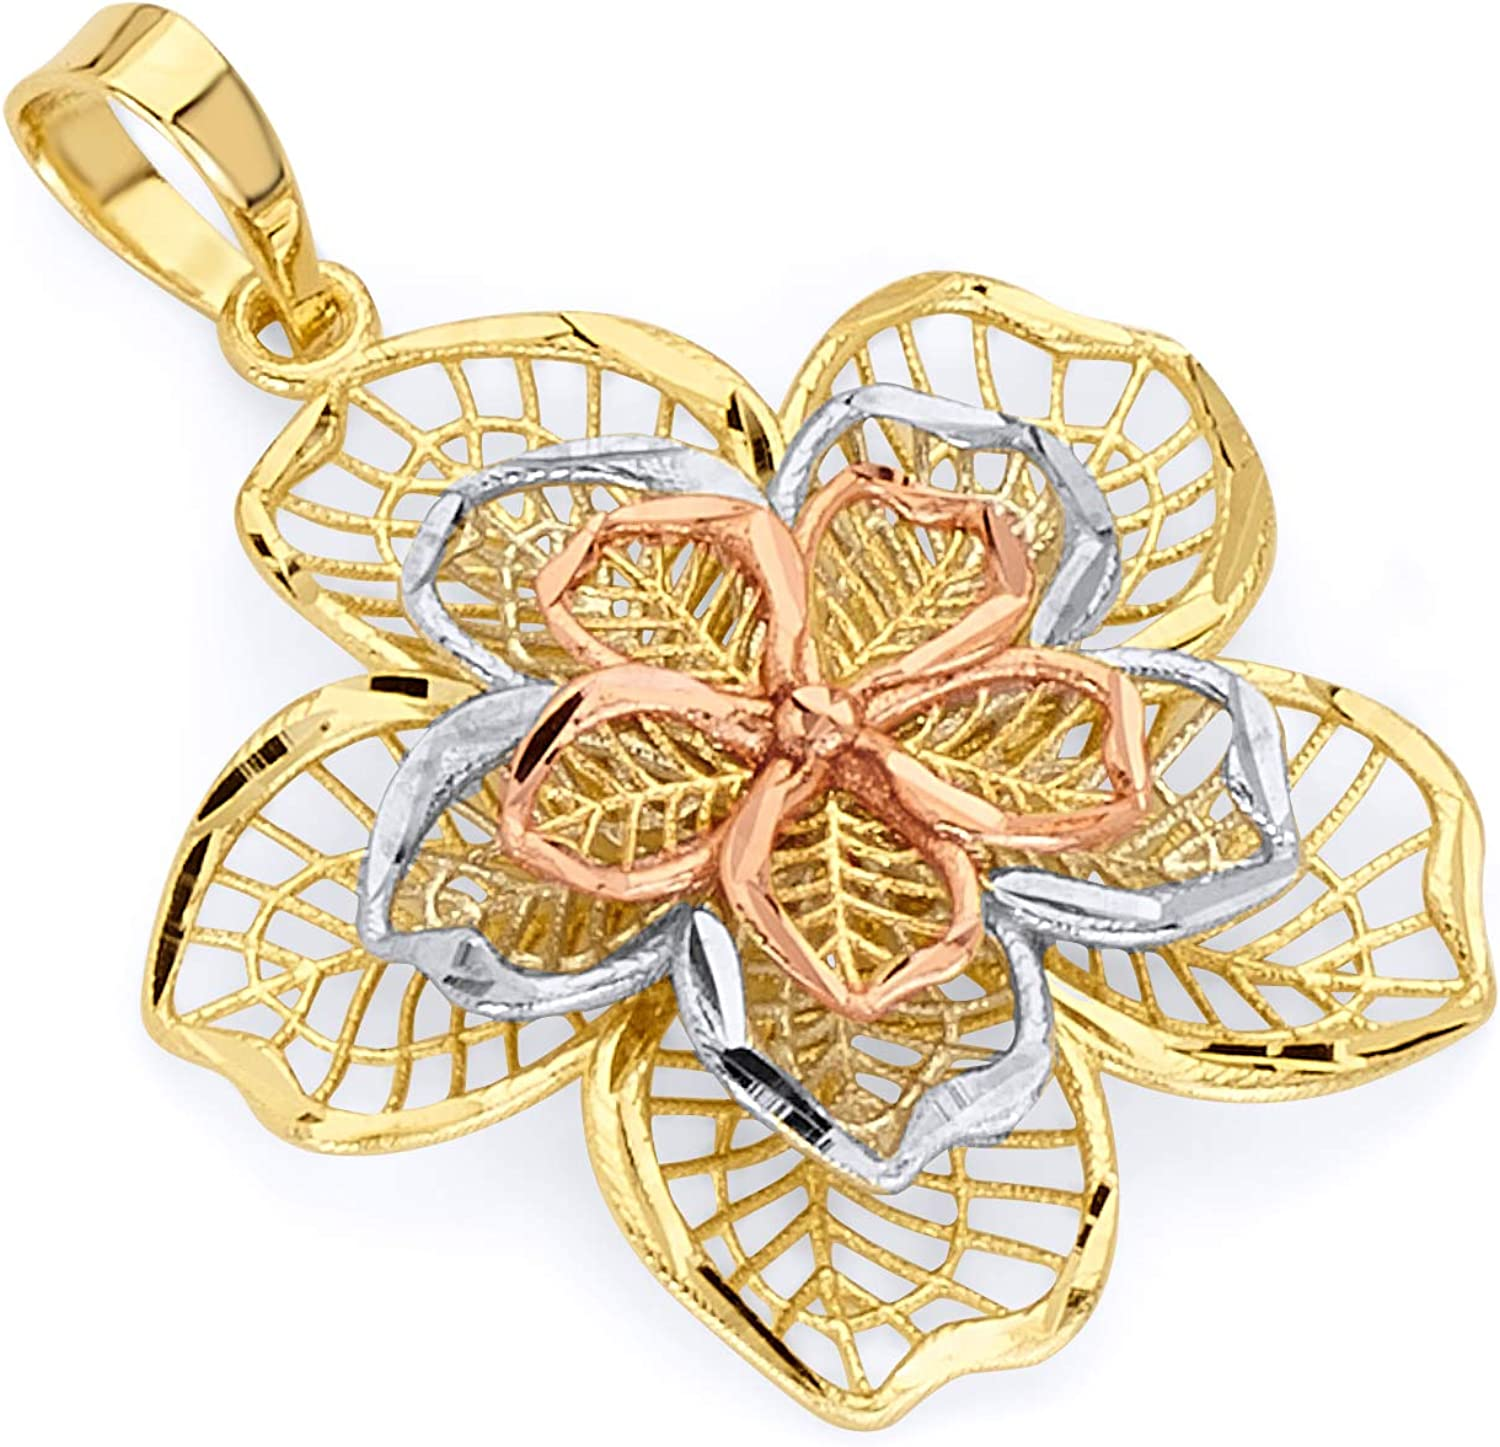 Wellingsale 14k 3 Tri Color White Yellow and Rose Gold Filigree Flower Pendant (Size : 26 x 23 mm)